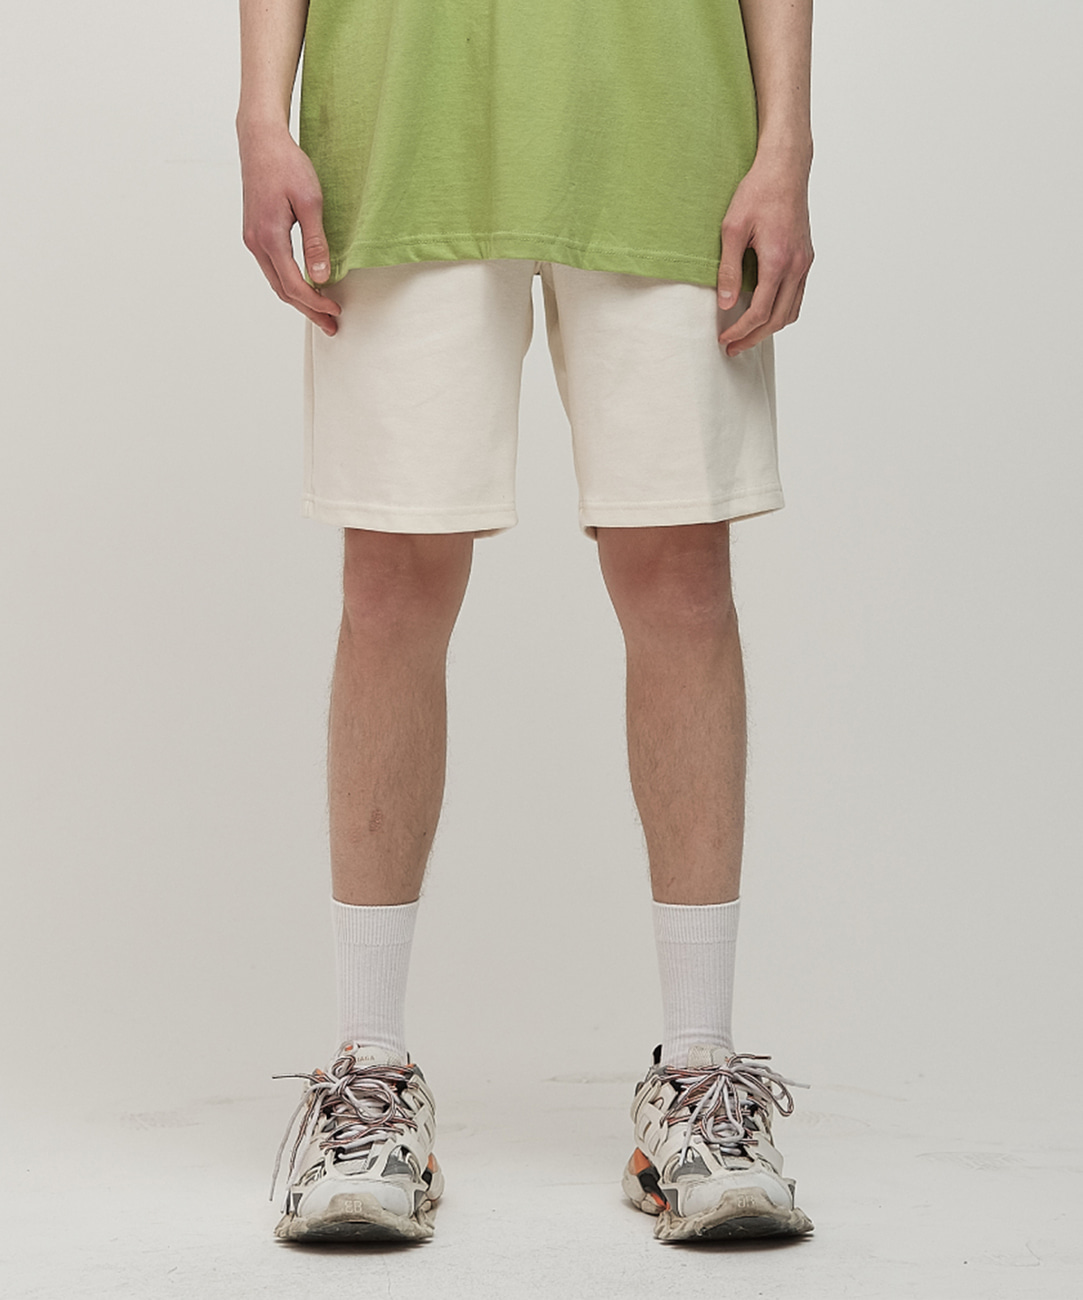 DWS LABEL SHORTS(IVORY)